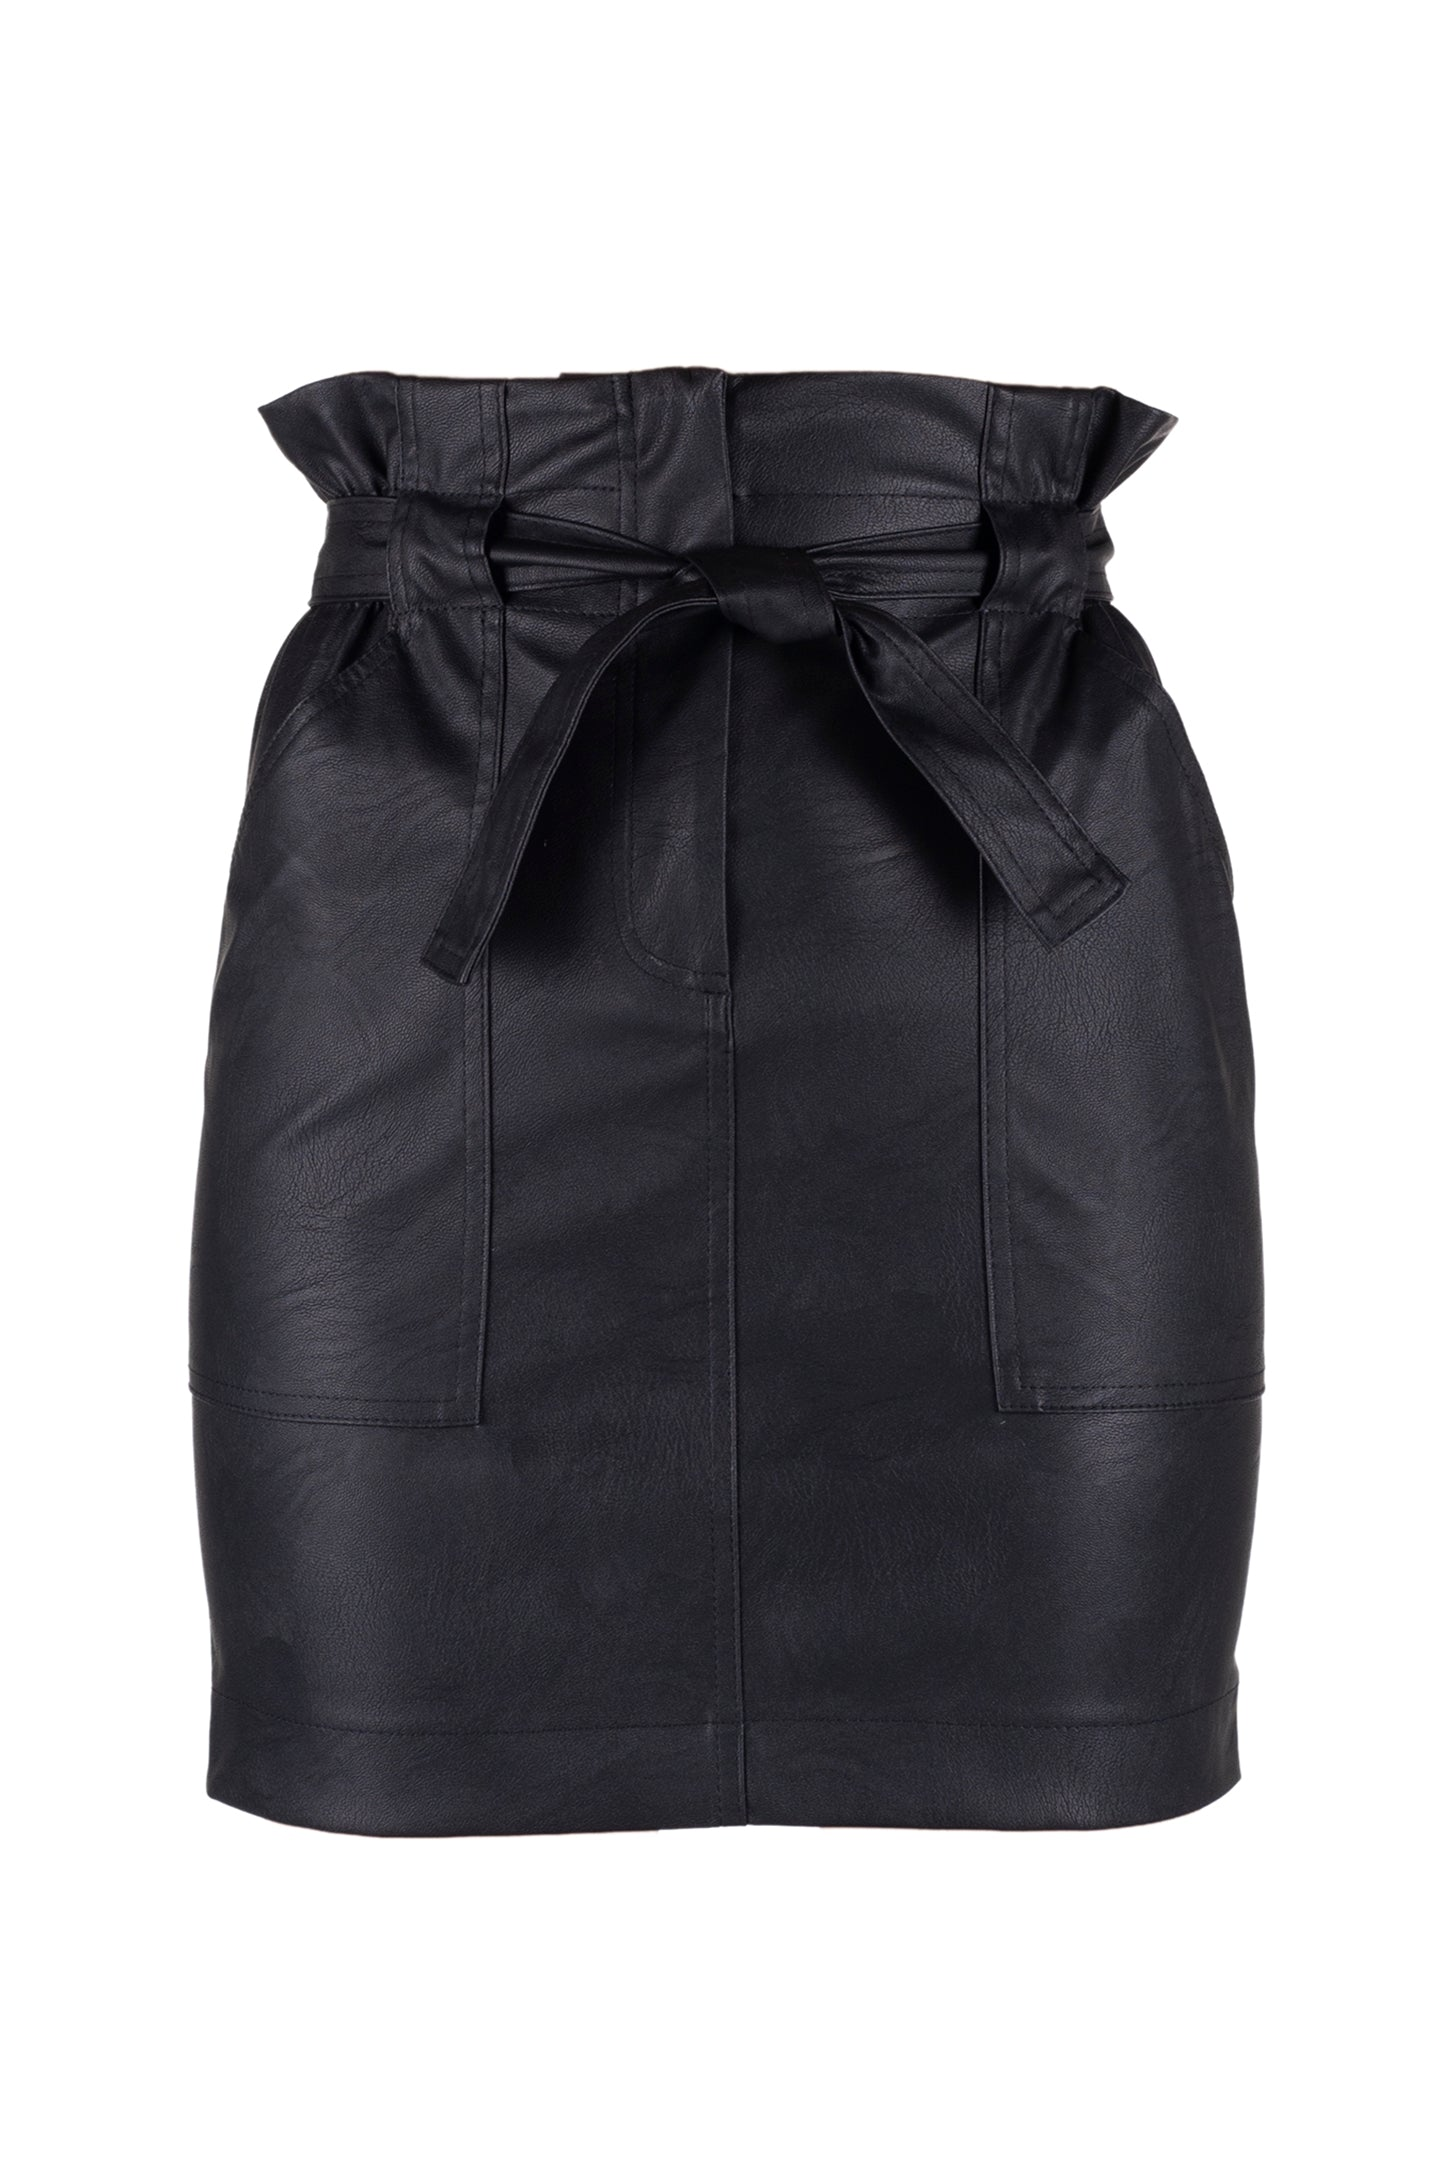 Roxy Black Skirt